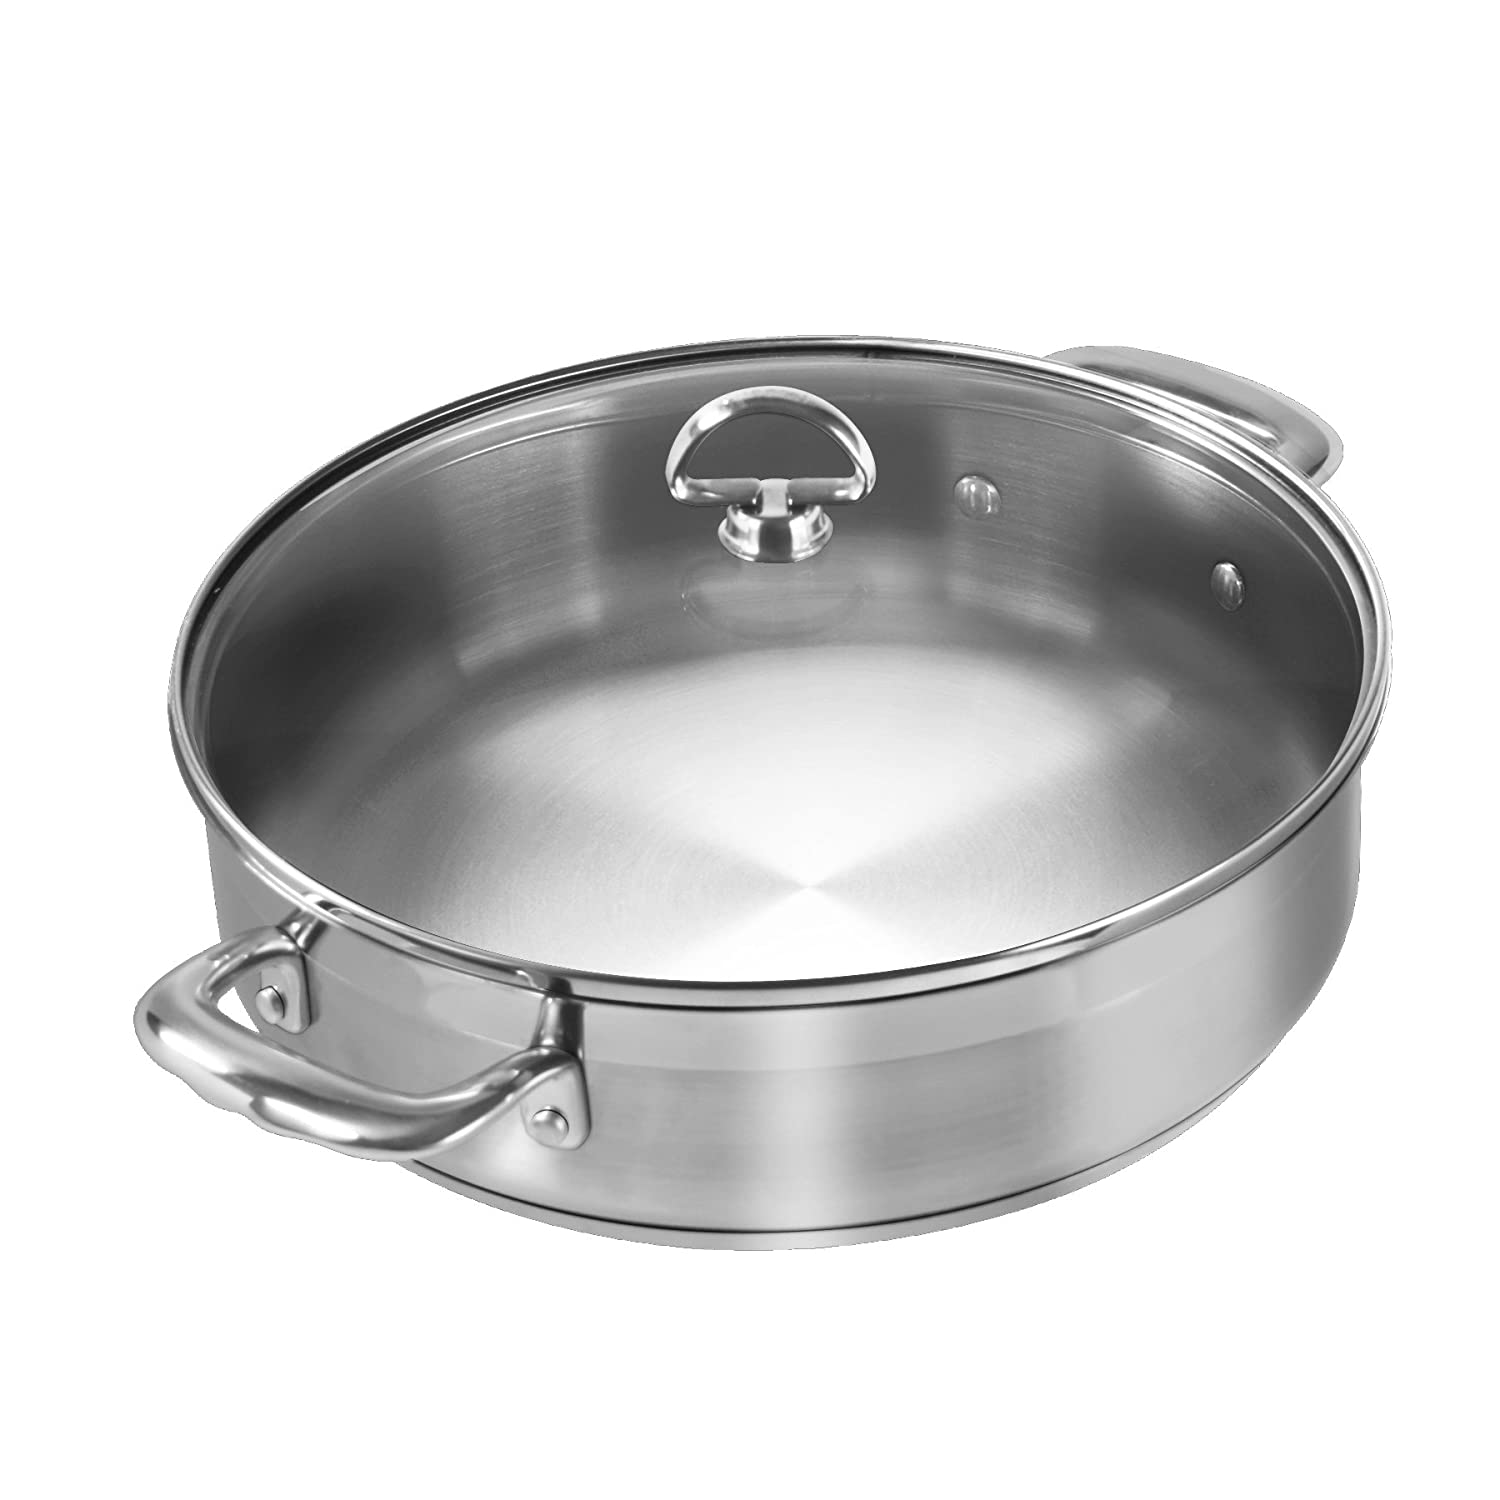 Chantal SLIN29-280 21-Steel Induction Sauteuse with Glass Lid, 5-Quart